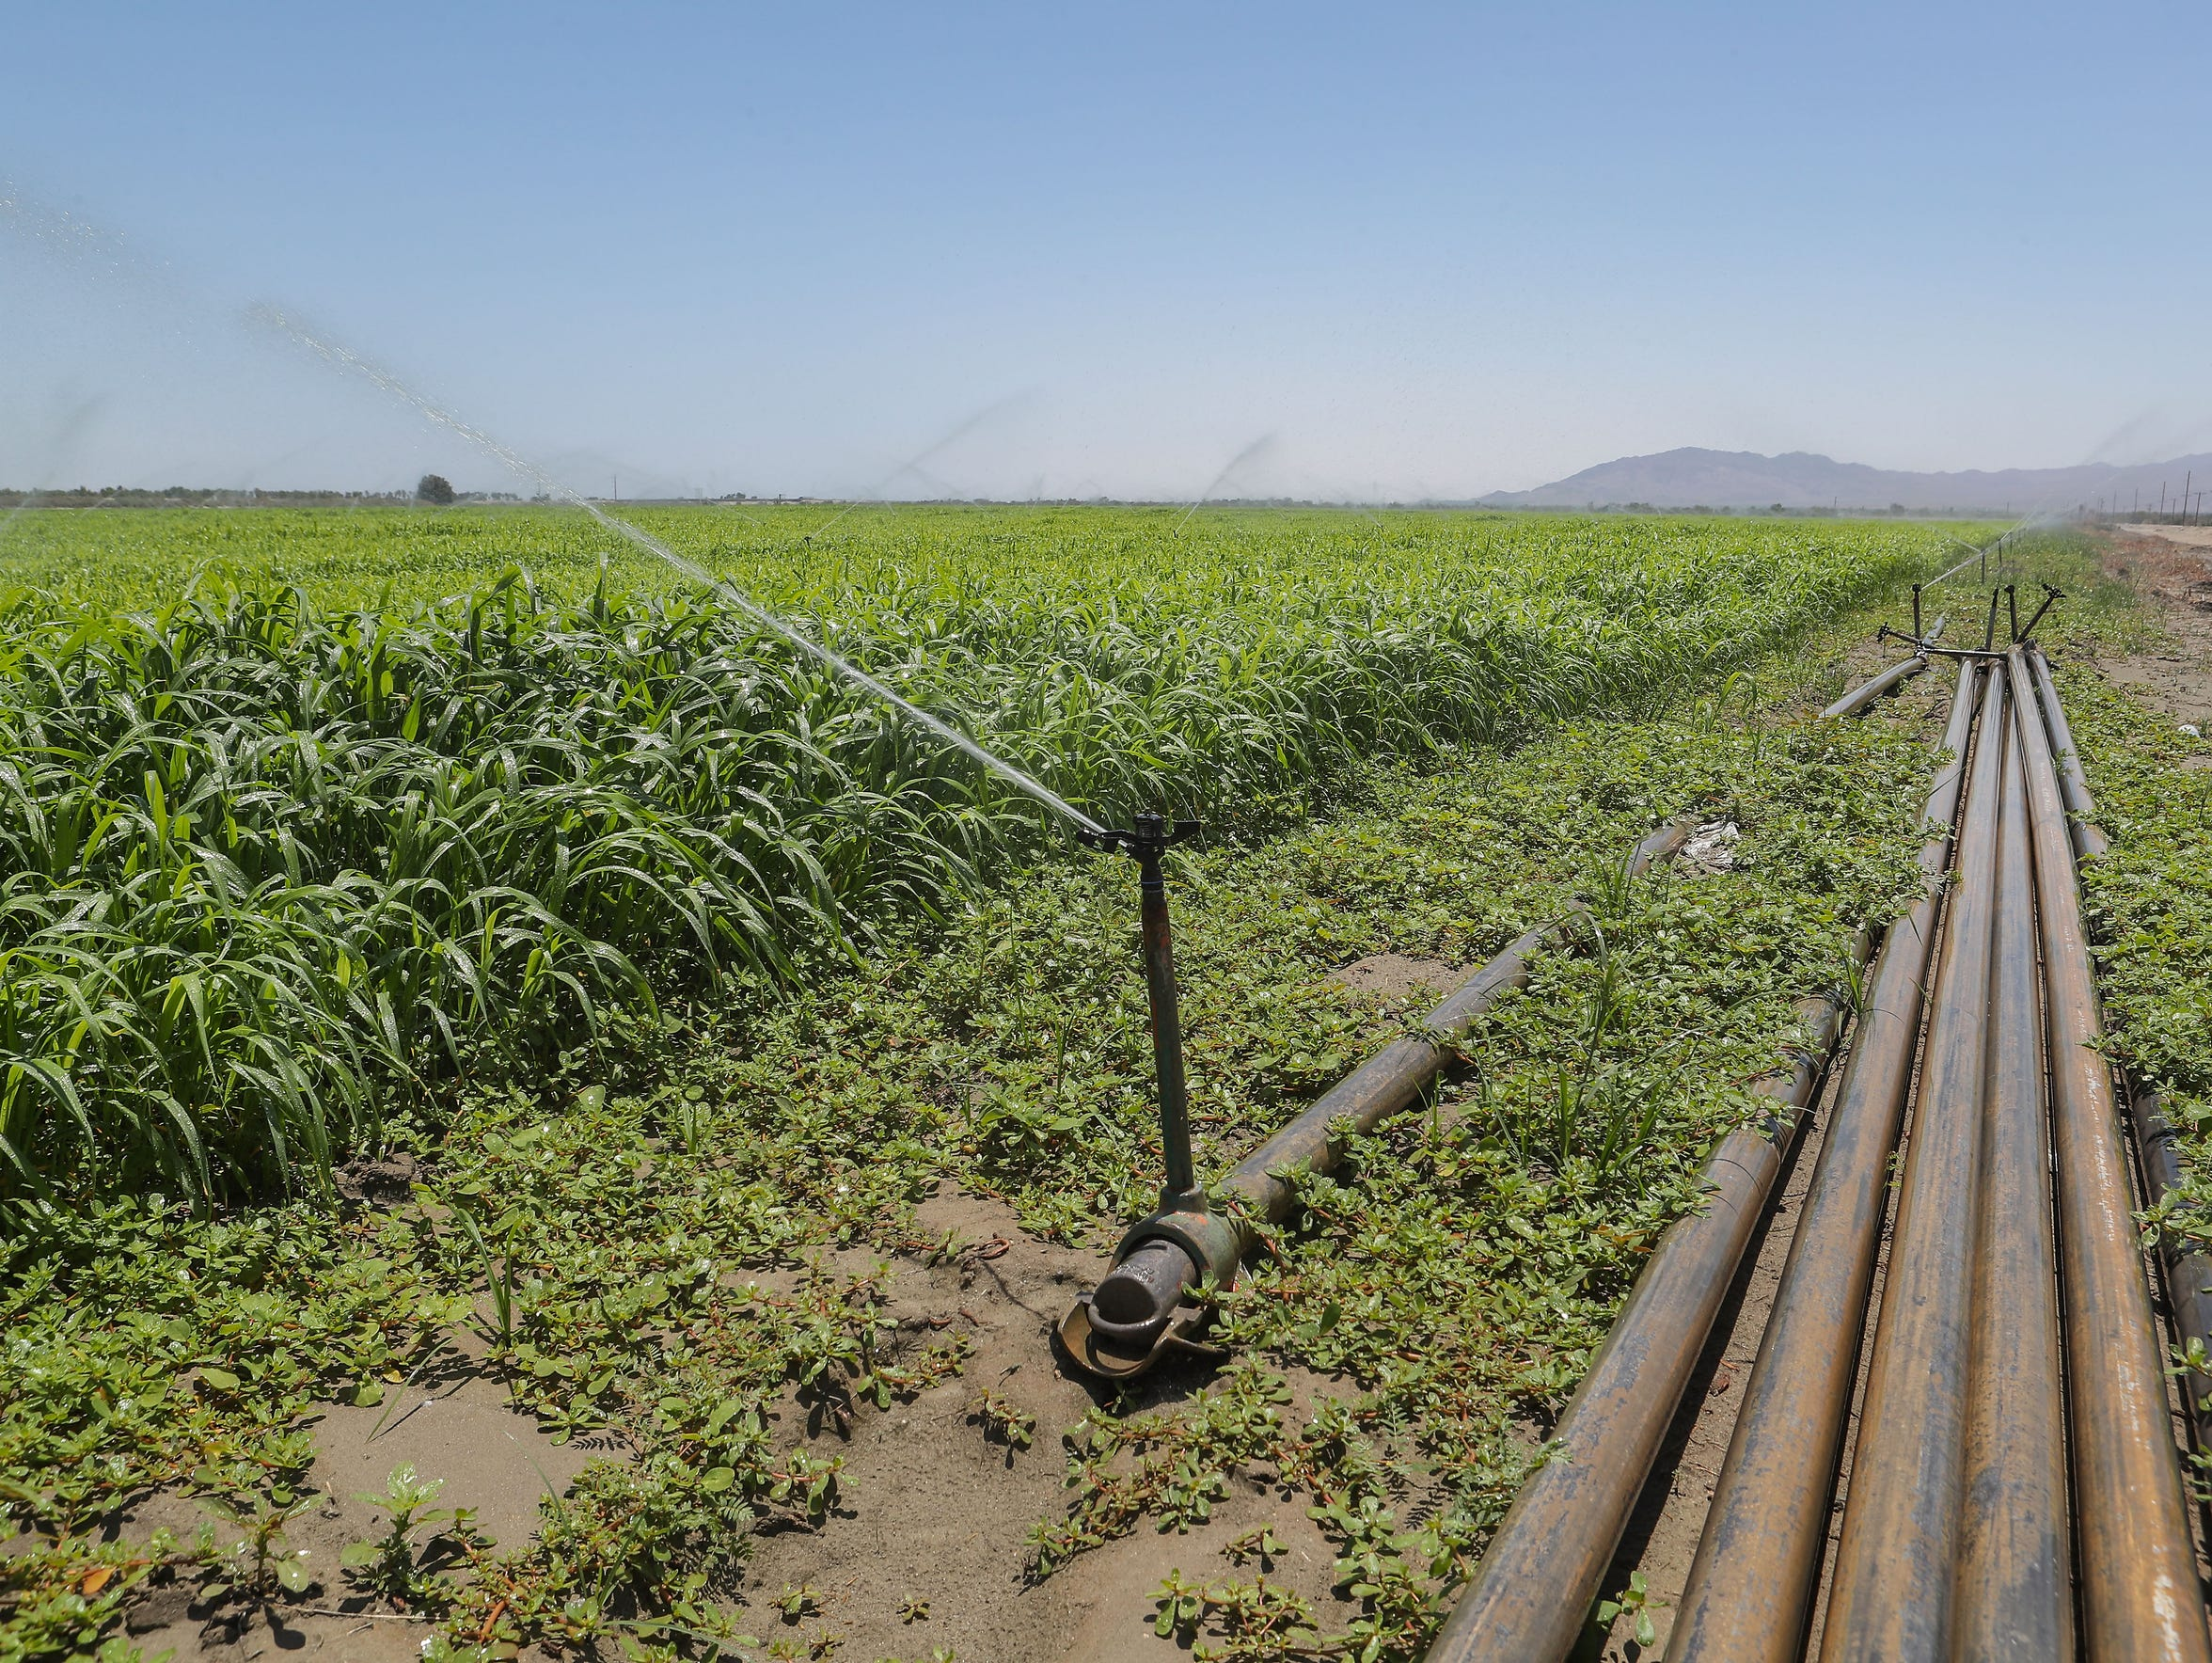 Most of the water that's used to irrigate farms in the Coachella Valley comes from the Colorado River.